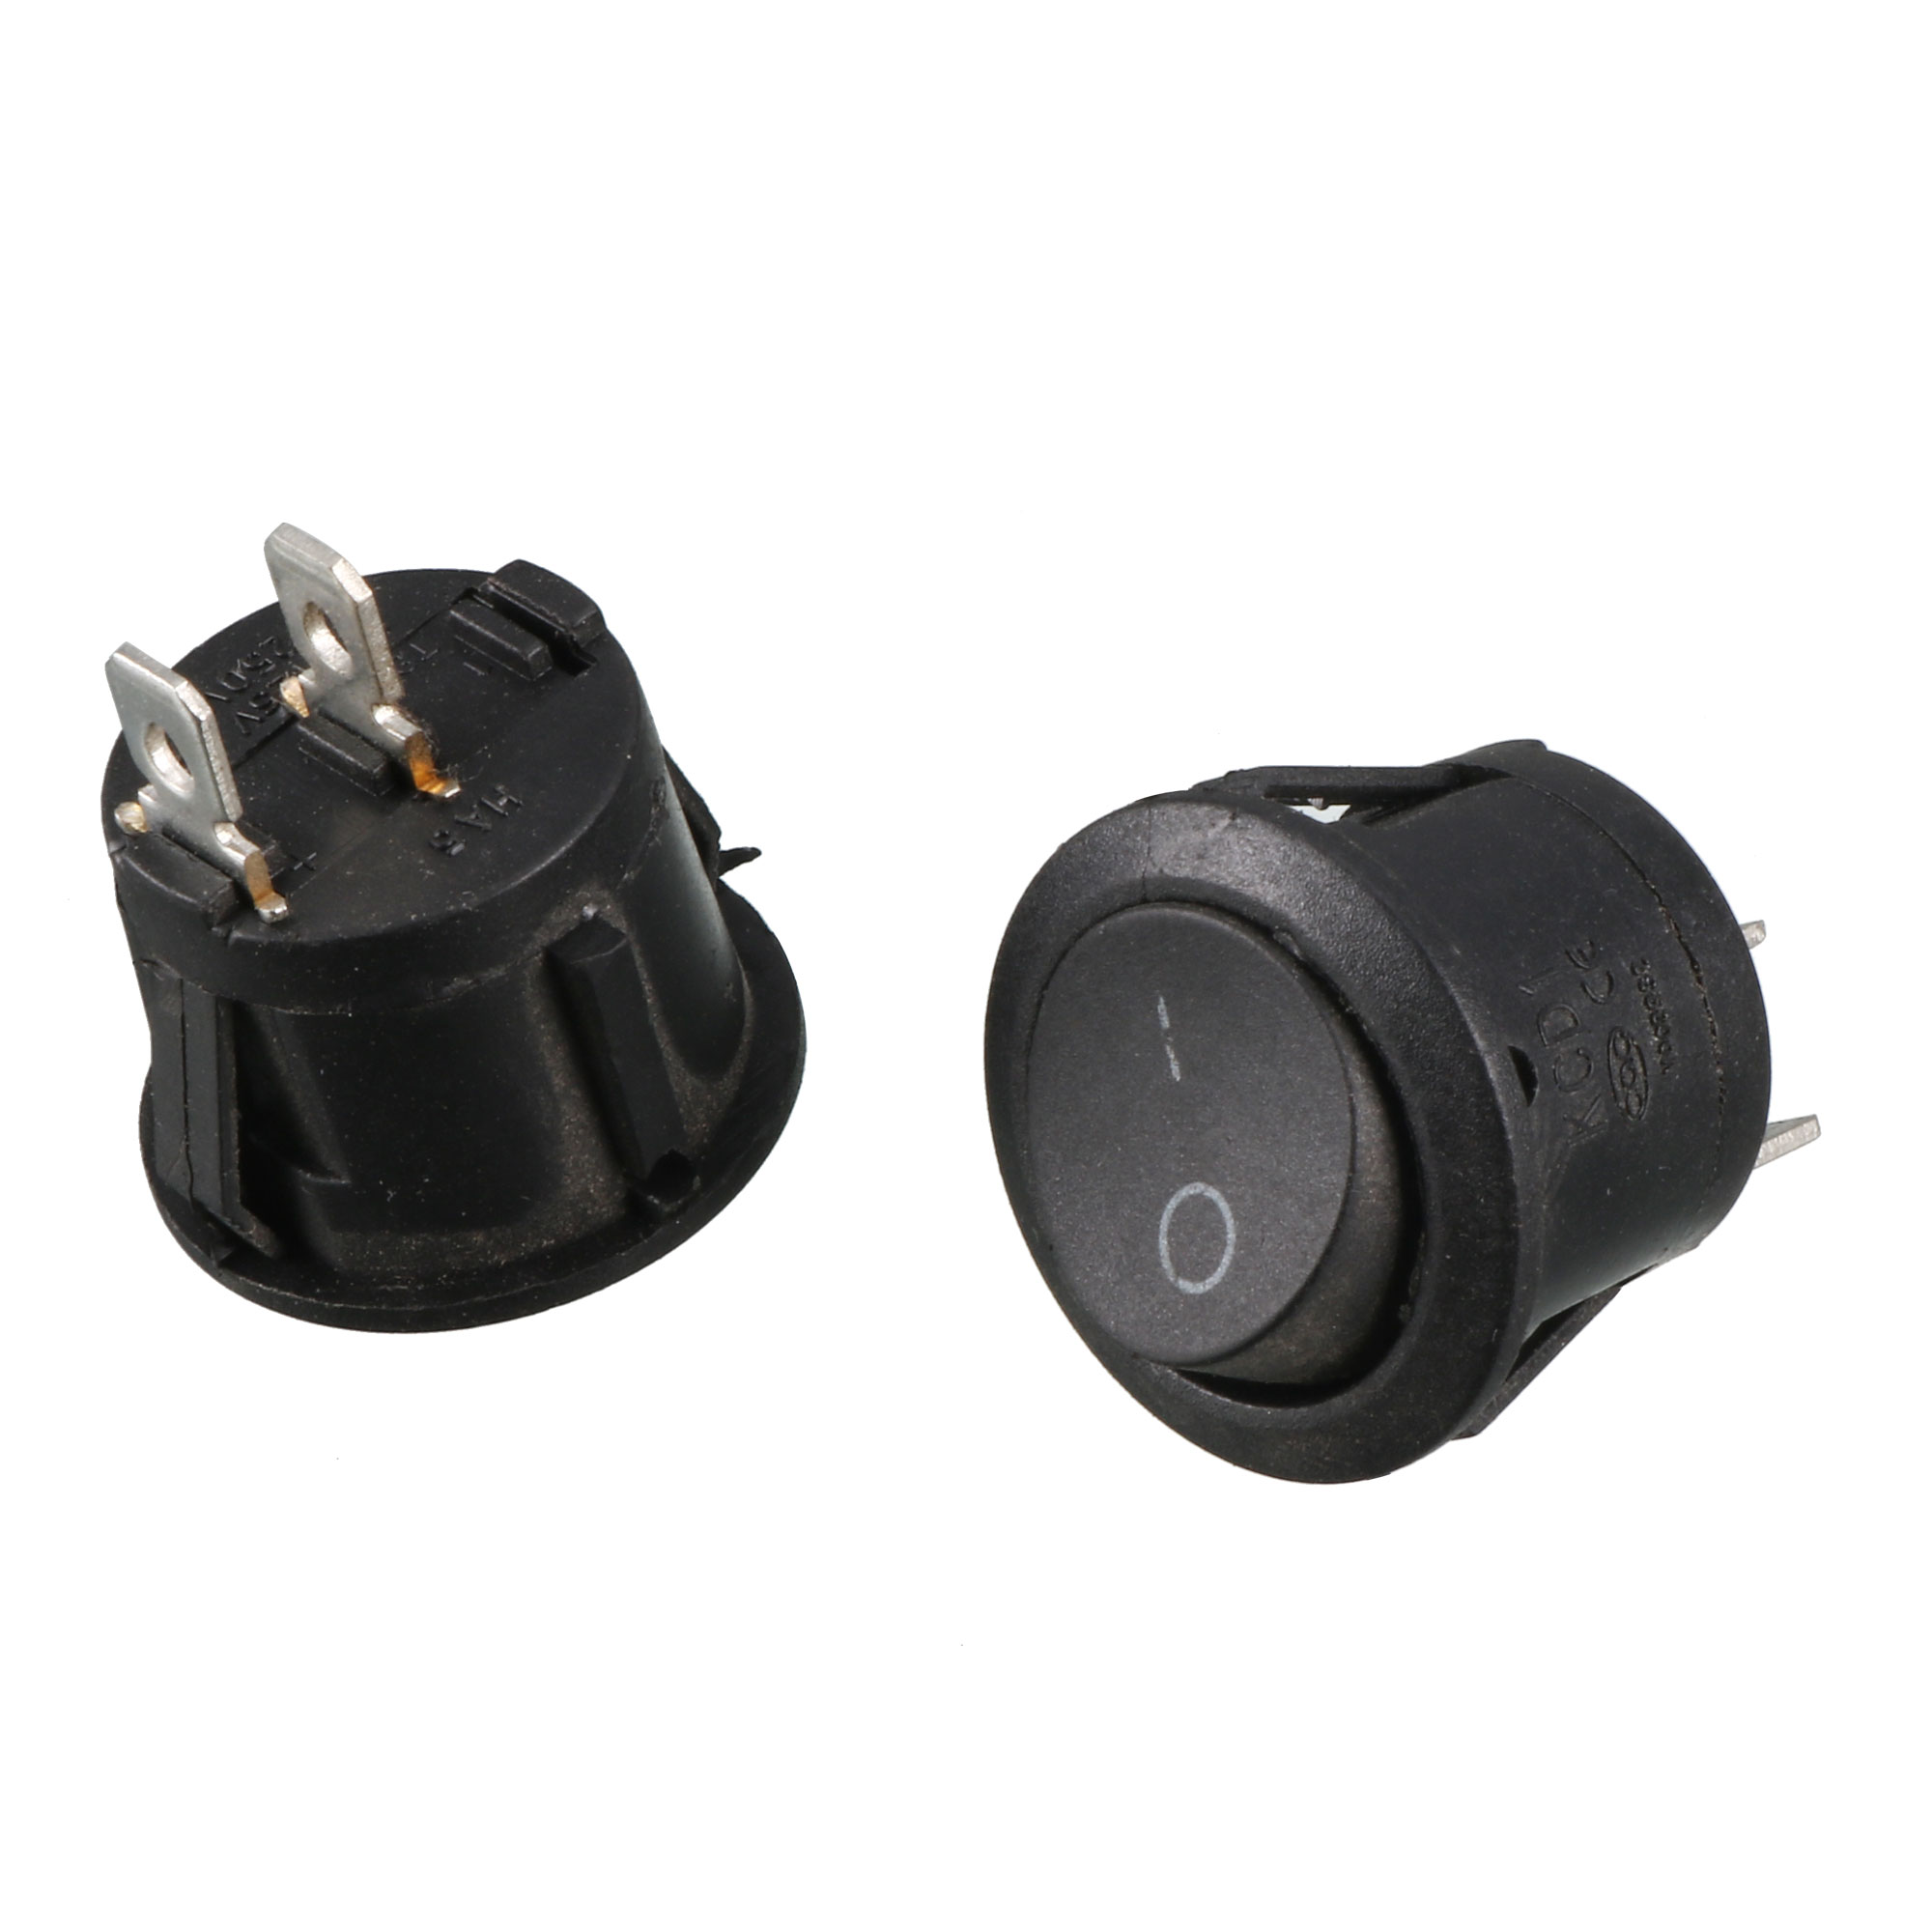 AC 250V 6A/10A SPST ON/OFF Snap In Boat Rocker Switch 2 Pcs